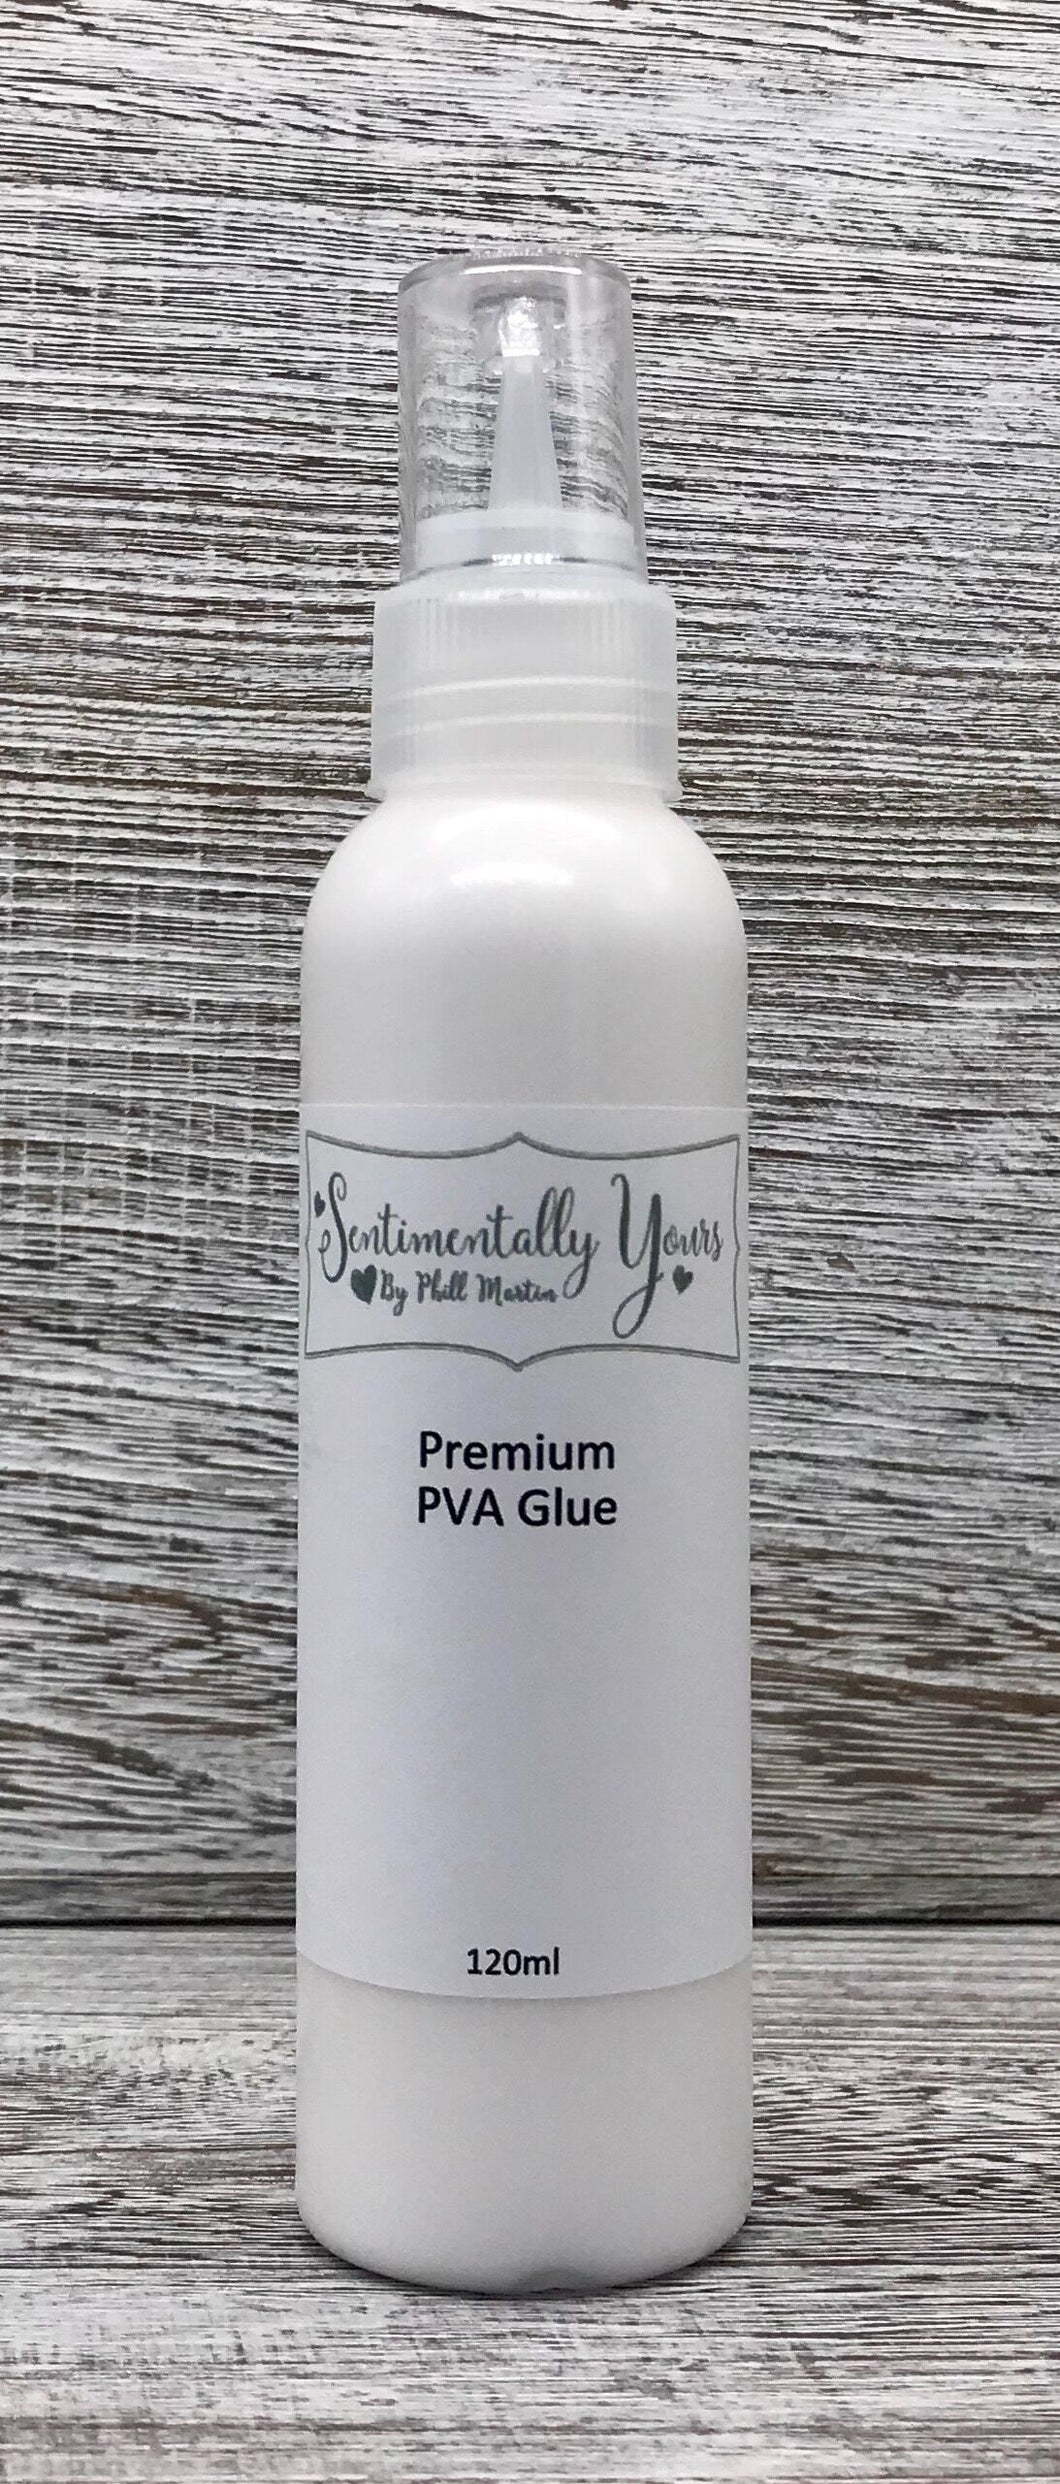 Sentimentally Yours Premium PVA Glue - 120ml